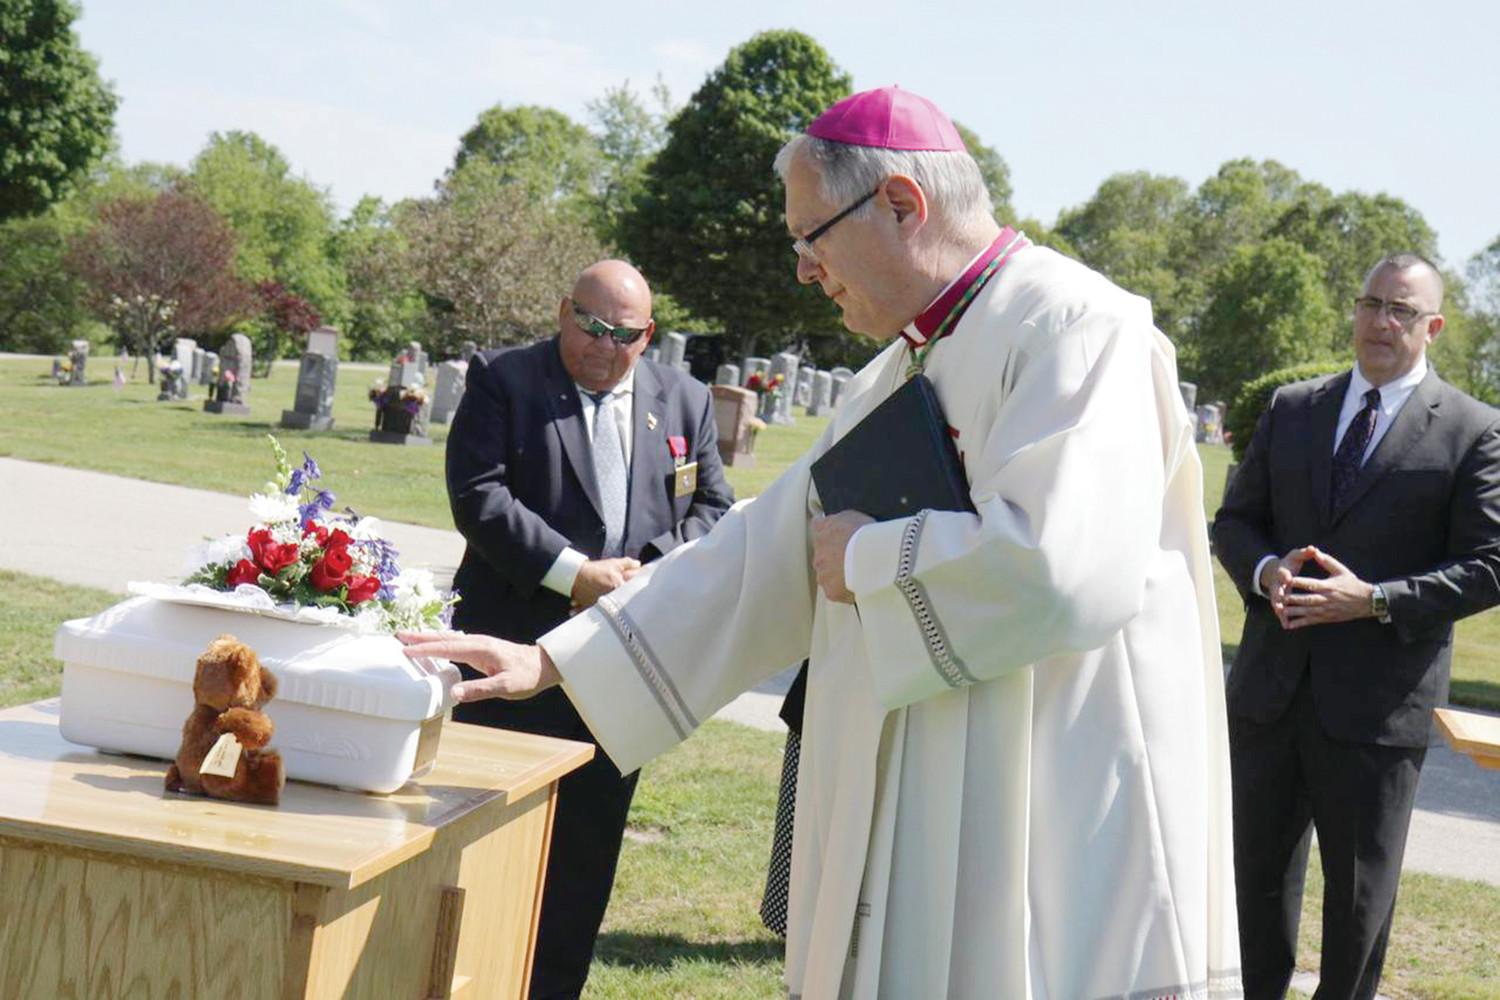 "In June 2015 in a simple, but dignified ceremony in a section of Gate of Heaven Cemetery set aside for the repose of babies, Bishop Tobin presided over a Christian burial service for the unborn child he named ""Francis,"" fulfilling a commitment he made to officials five months before after a fetus was found floating amid the sewage at a nearby wastewater treatment facility. The tiny white casket, with ""Baby Francis 2015"" inscribed on a gold plaque affixed to one end, and flanked by flowers and a small teddy bear, rested upon a portable pine altar as the burial service was conducted."